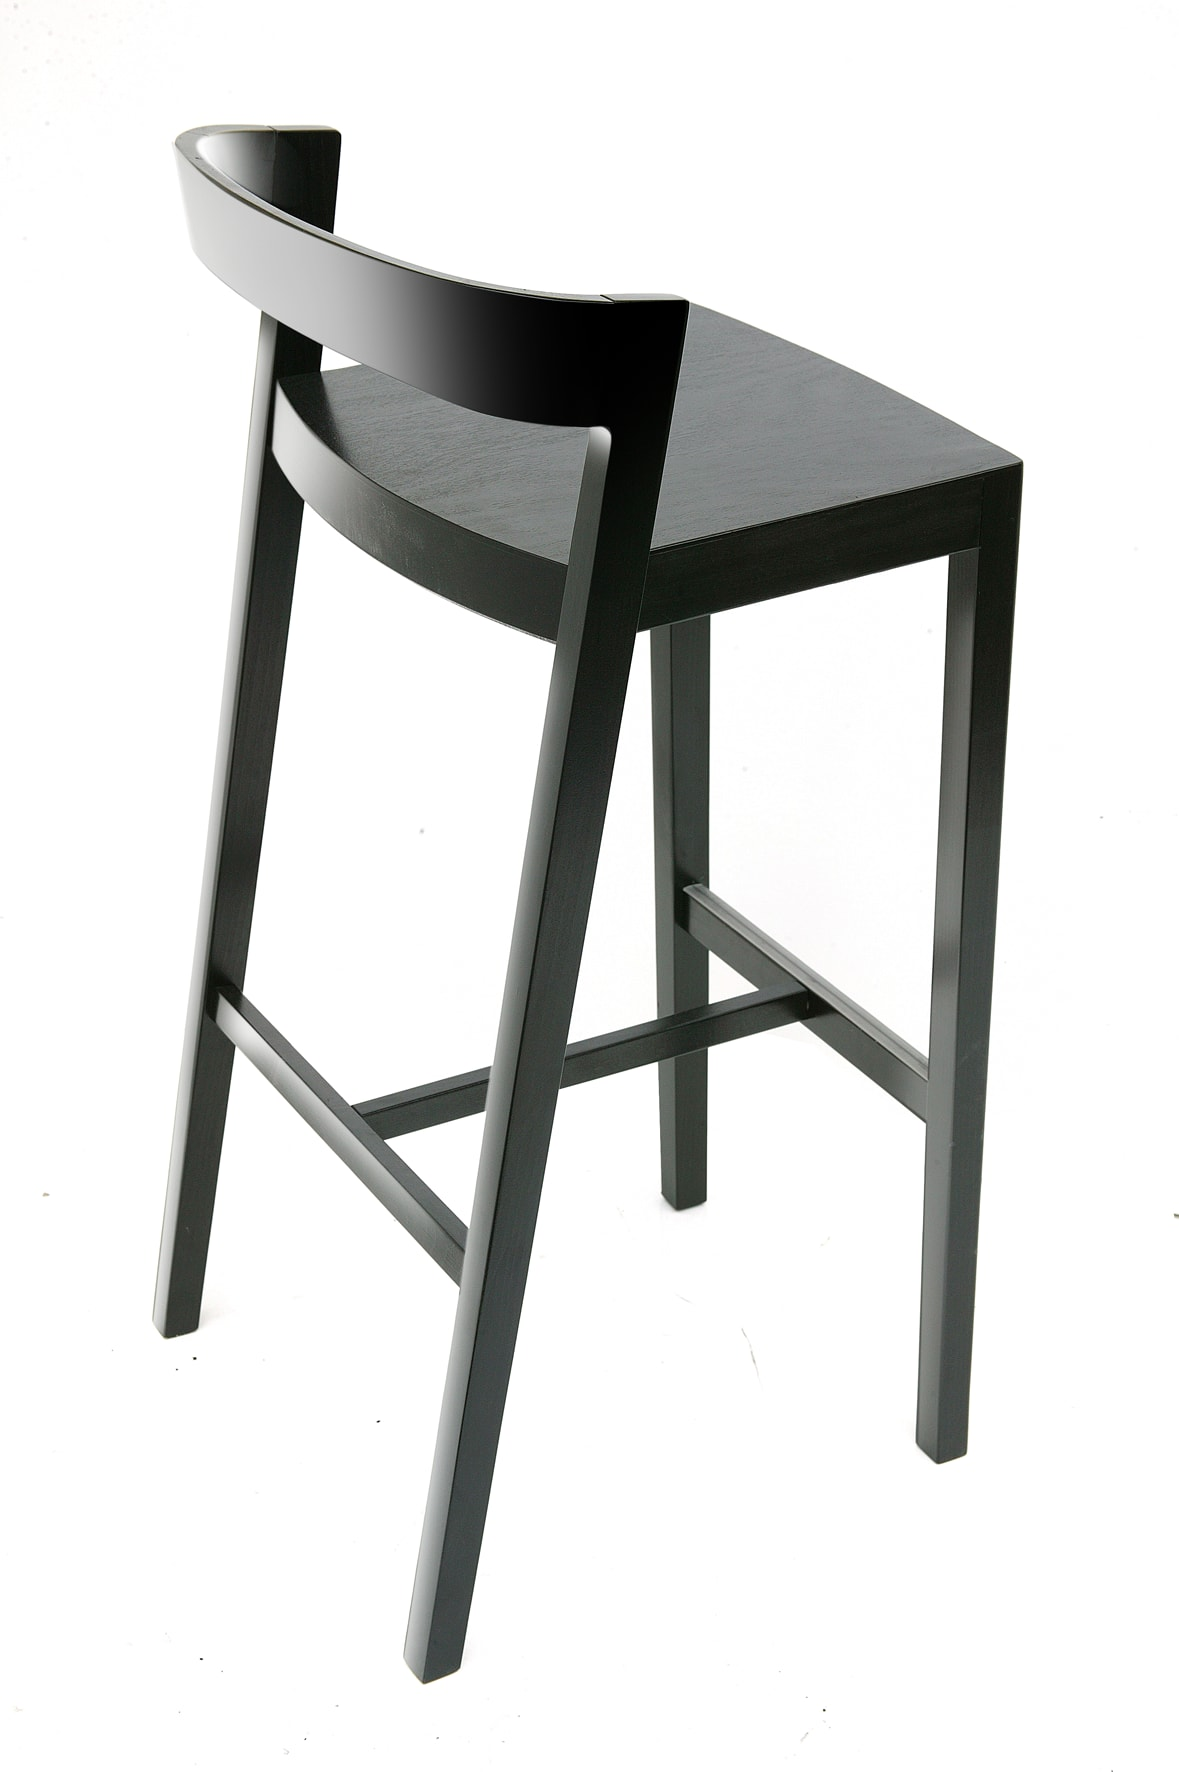 Chairs by Bedont seen at Sentinel Bar & Grill, Perth - Drive Chair and Drive Barstool